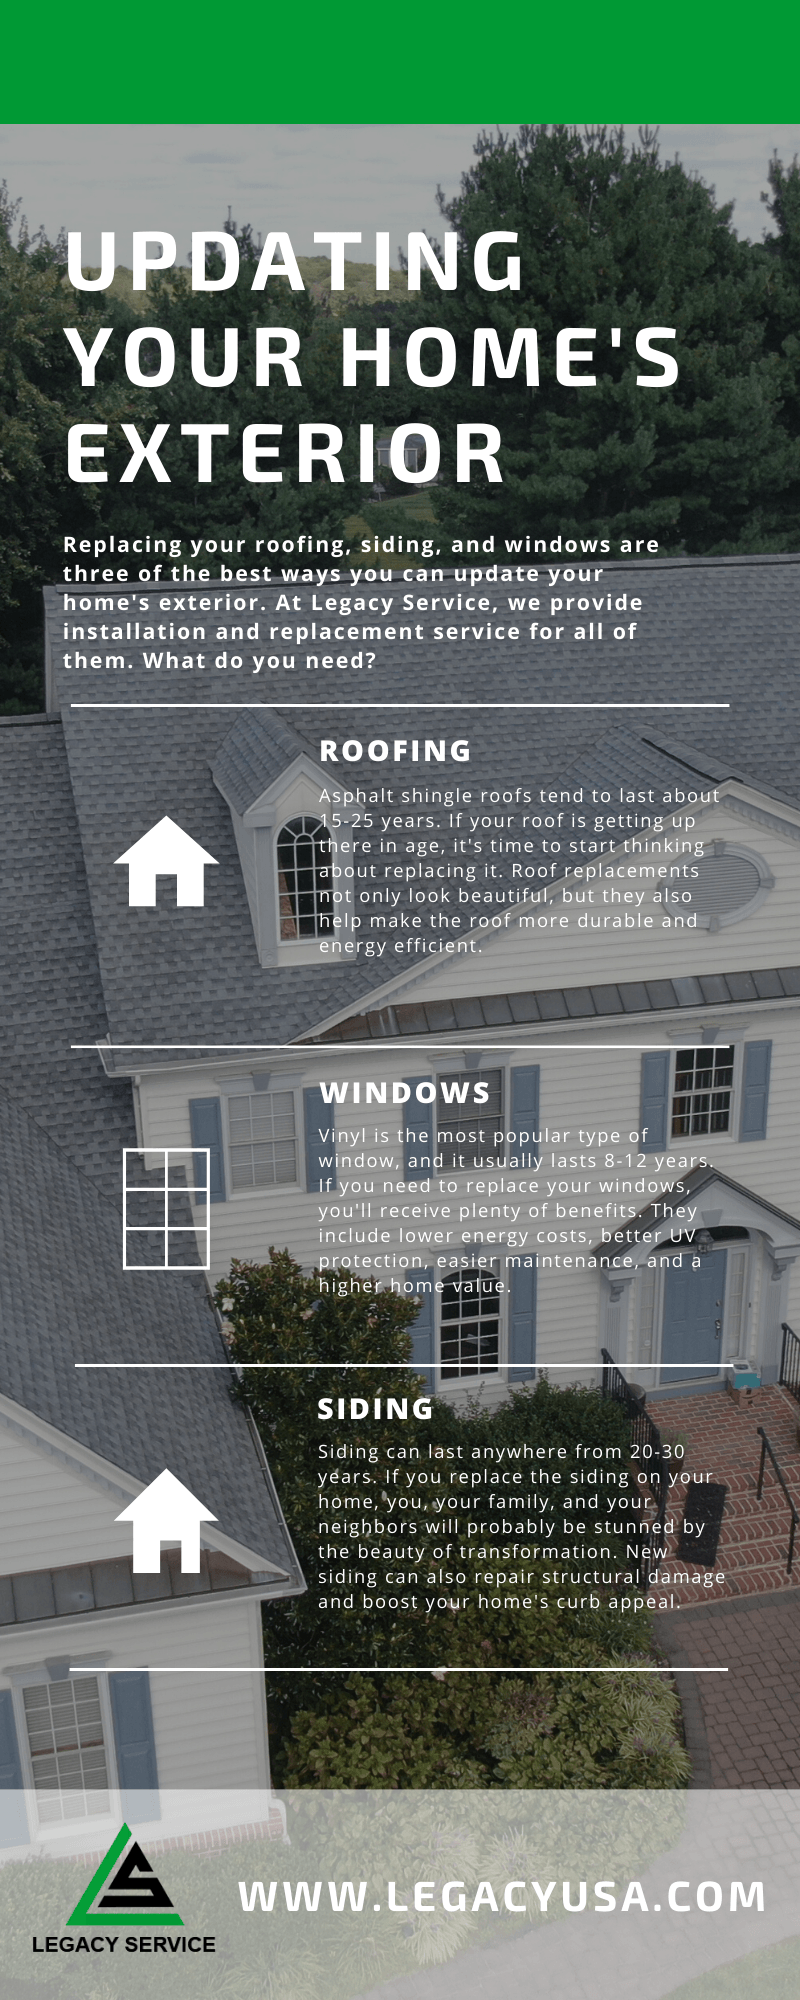 Updating Your Home Exterior Infographic